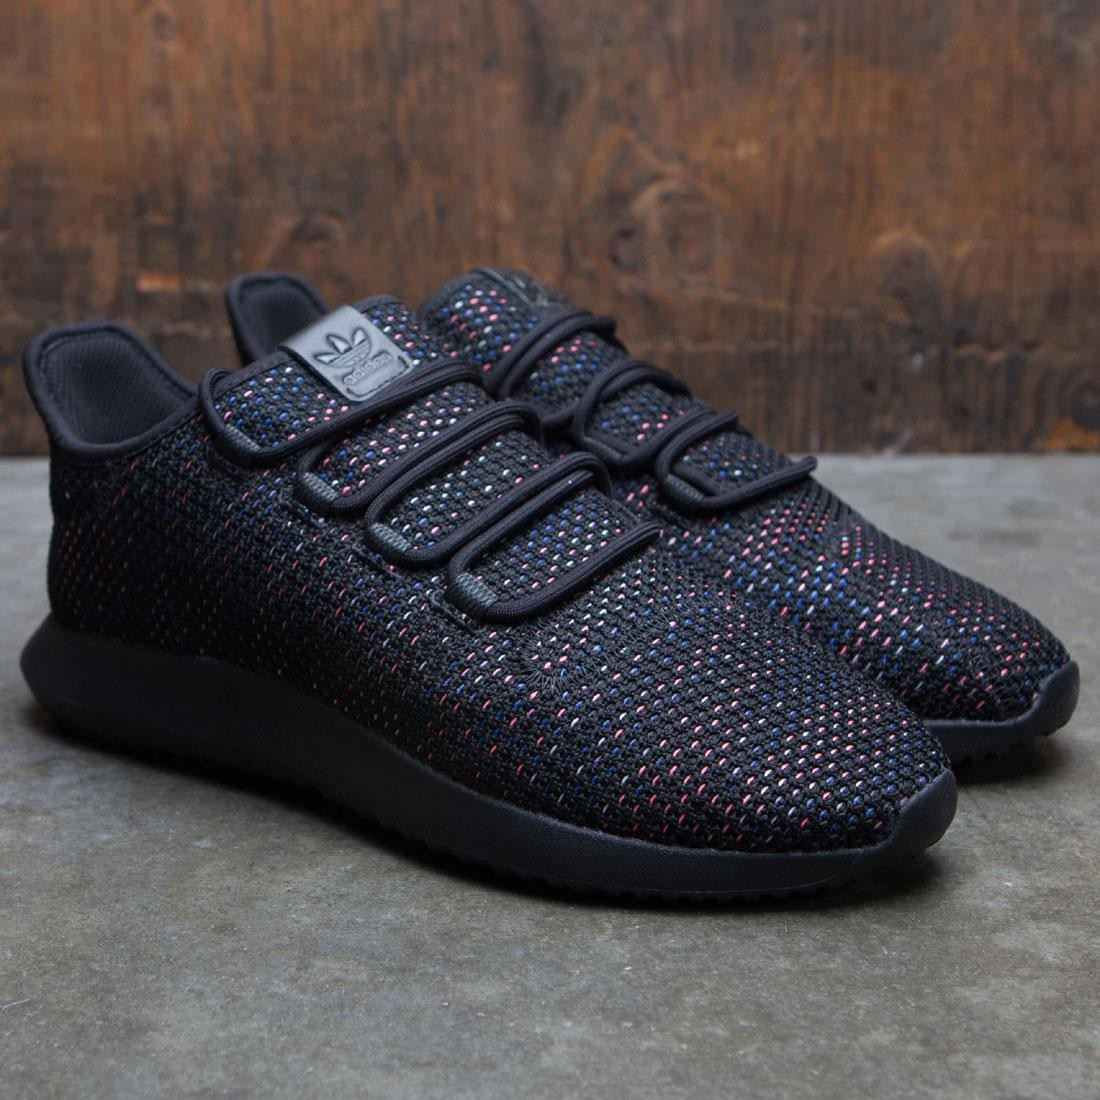 reputable site 81019 8e4ae Adidas Men Tubular Shadow CK (black / solar red / mystery ink)